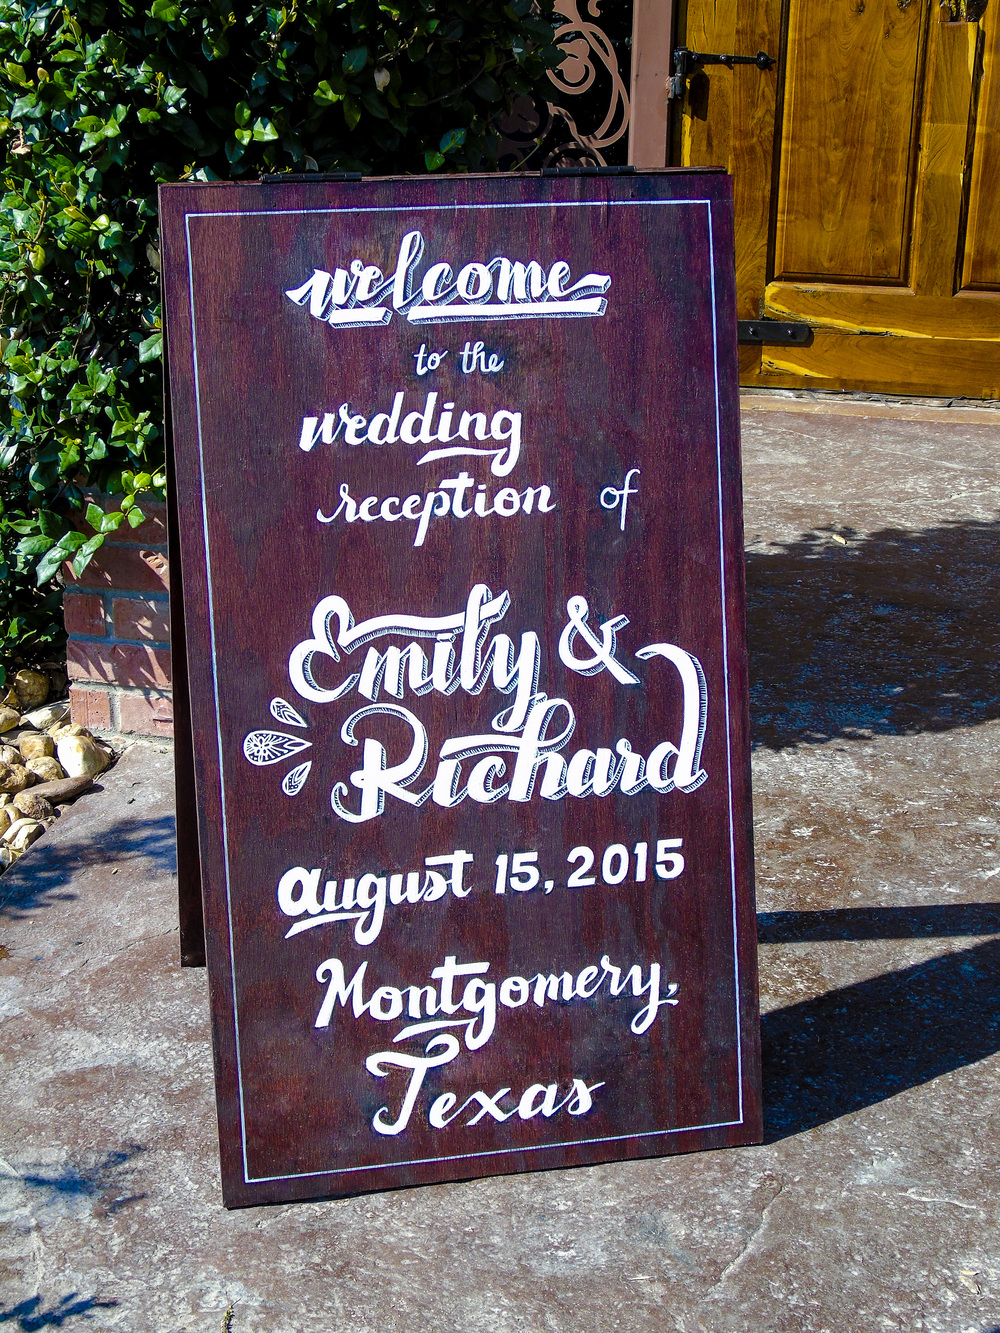 emily_richard_reception_1_1.JPG